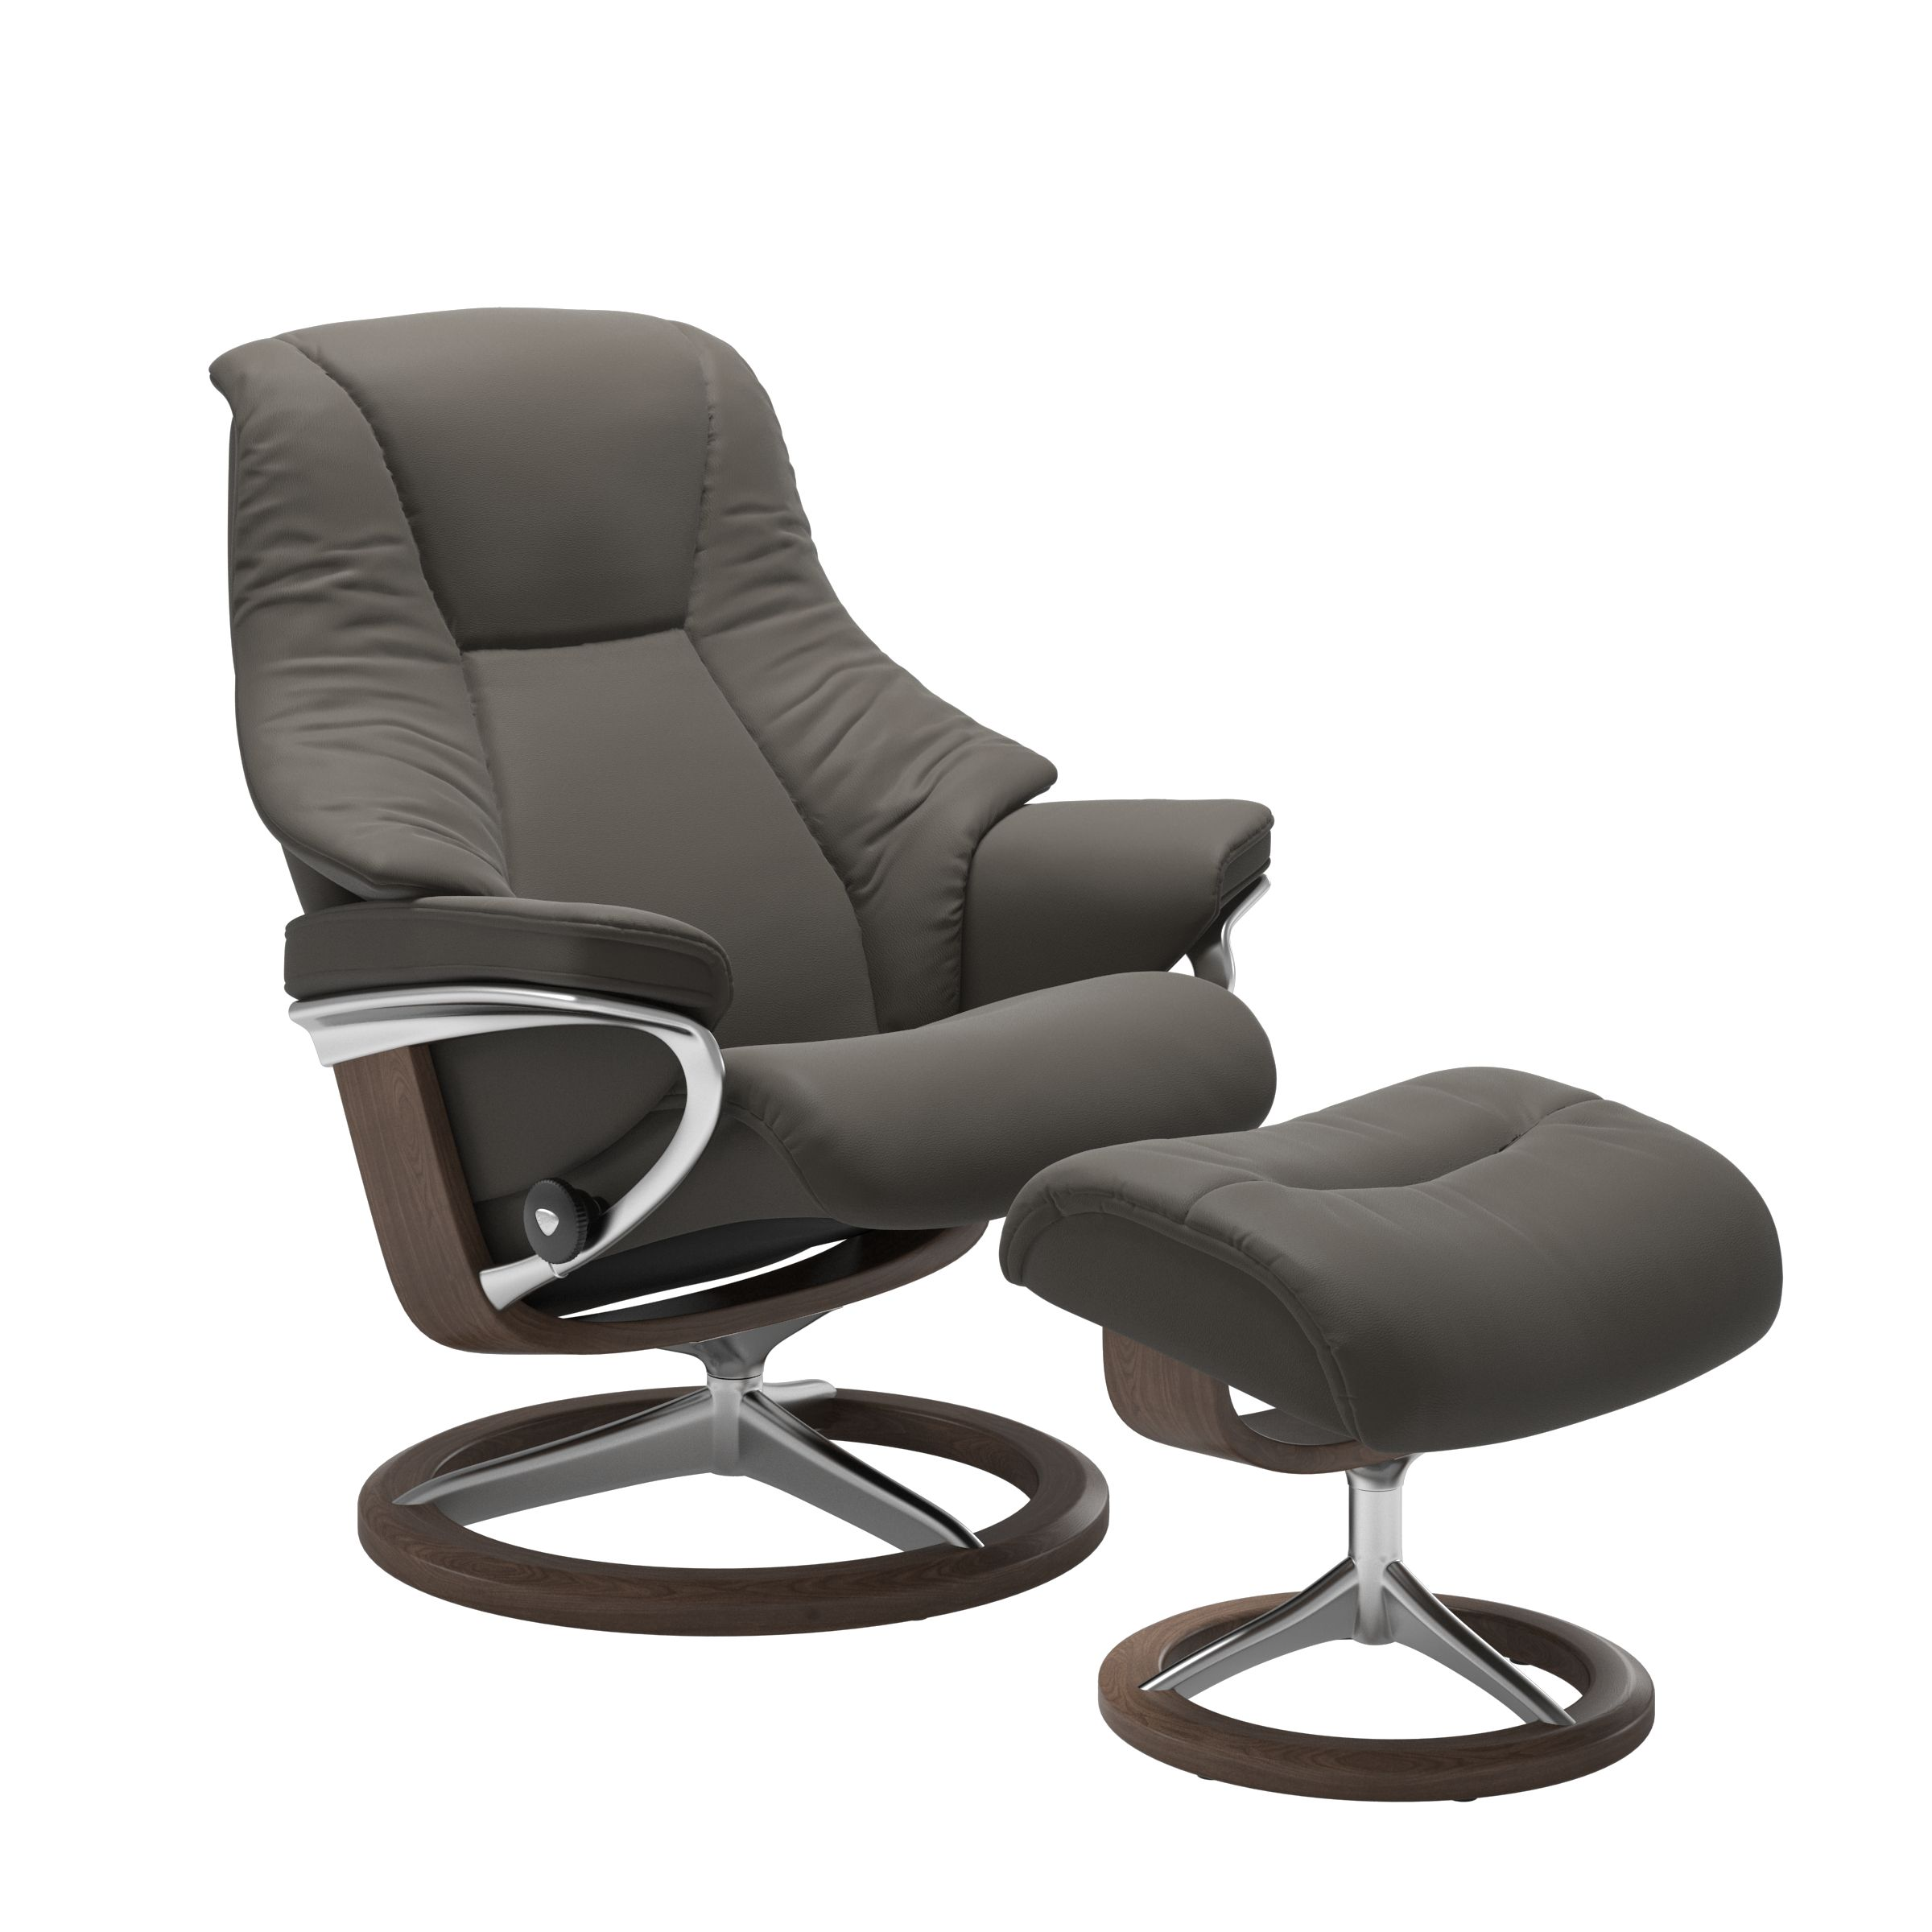 Stressless Ekornes Sessel Stressless Live Design Your Own Recliner Stressless